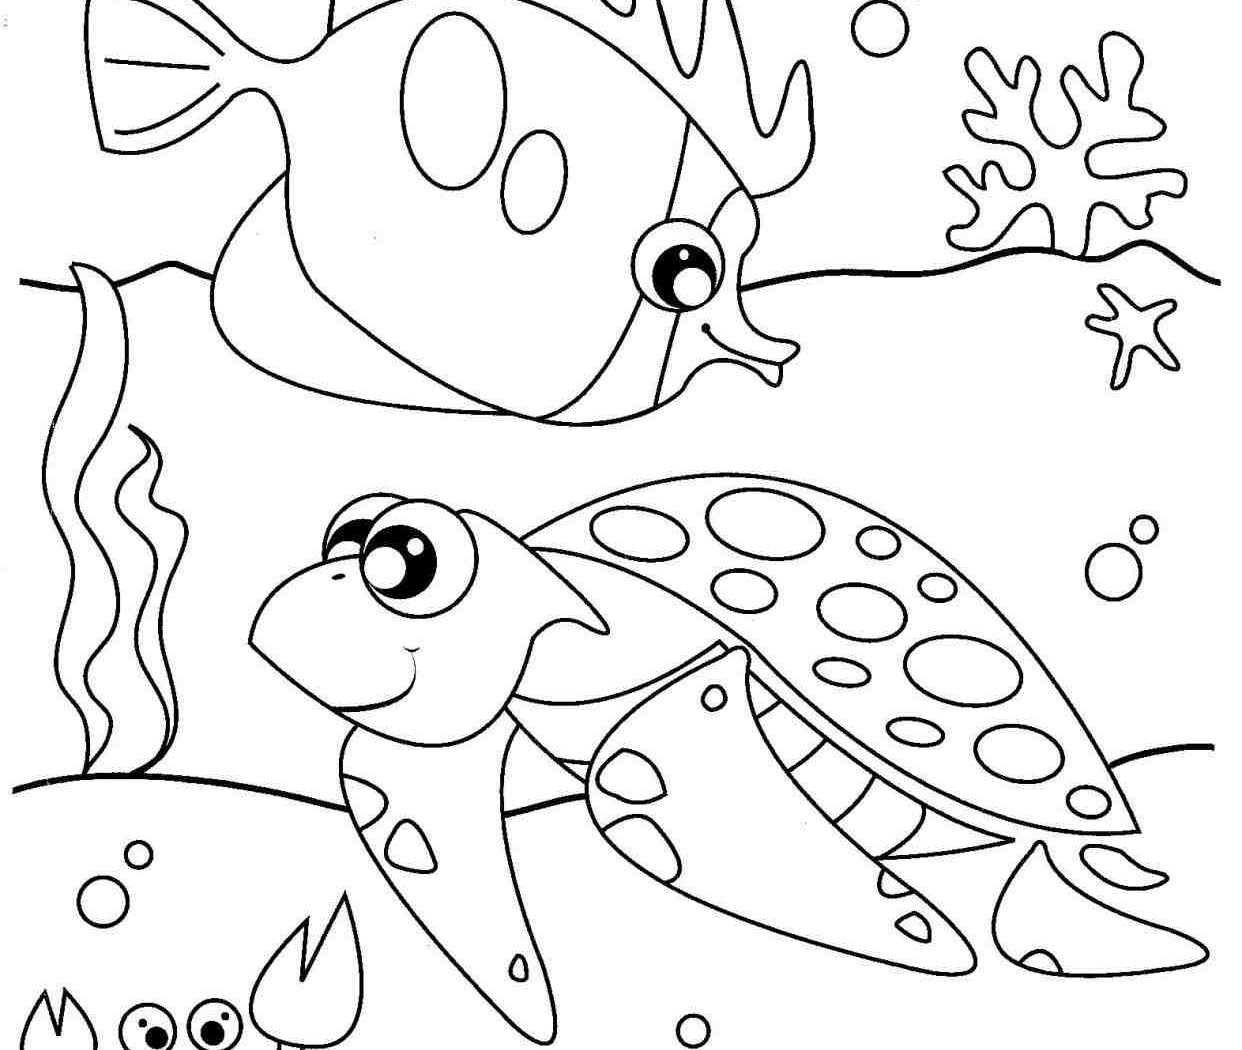 animal habitat coloring coloring pages ecosystem animals lovely special needs coloring animal habitat